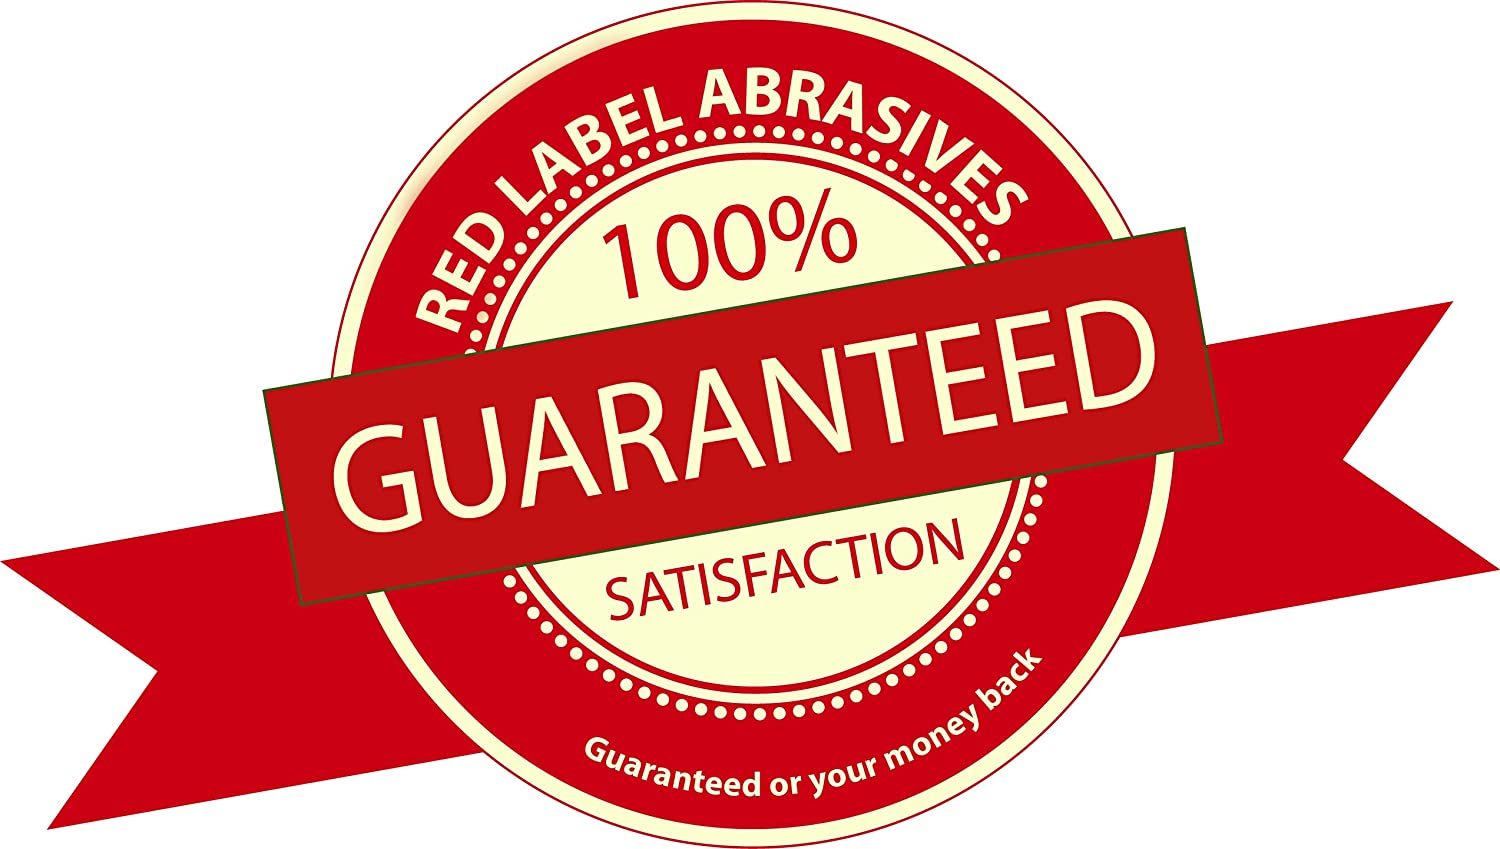 3 Pack Red Label Abrasives 4 X 24 Inch 36 Grit Aluminum Oxide Multipurpose Sanding Belts